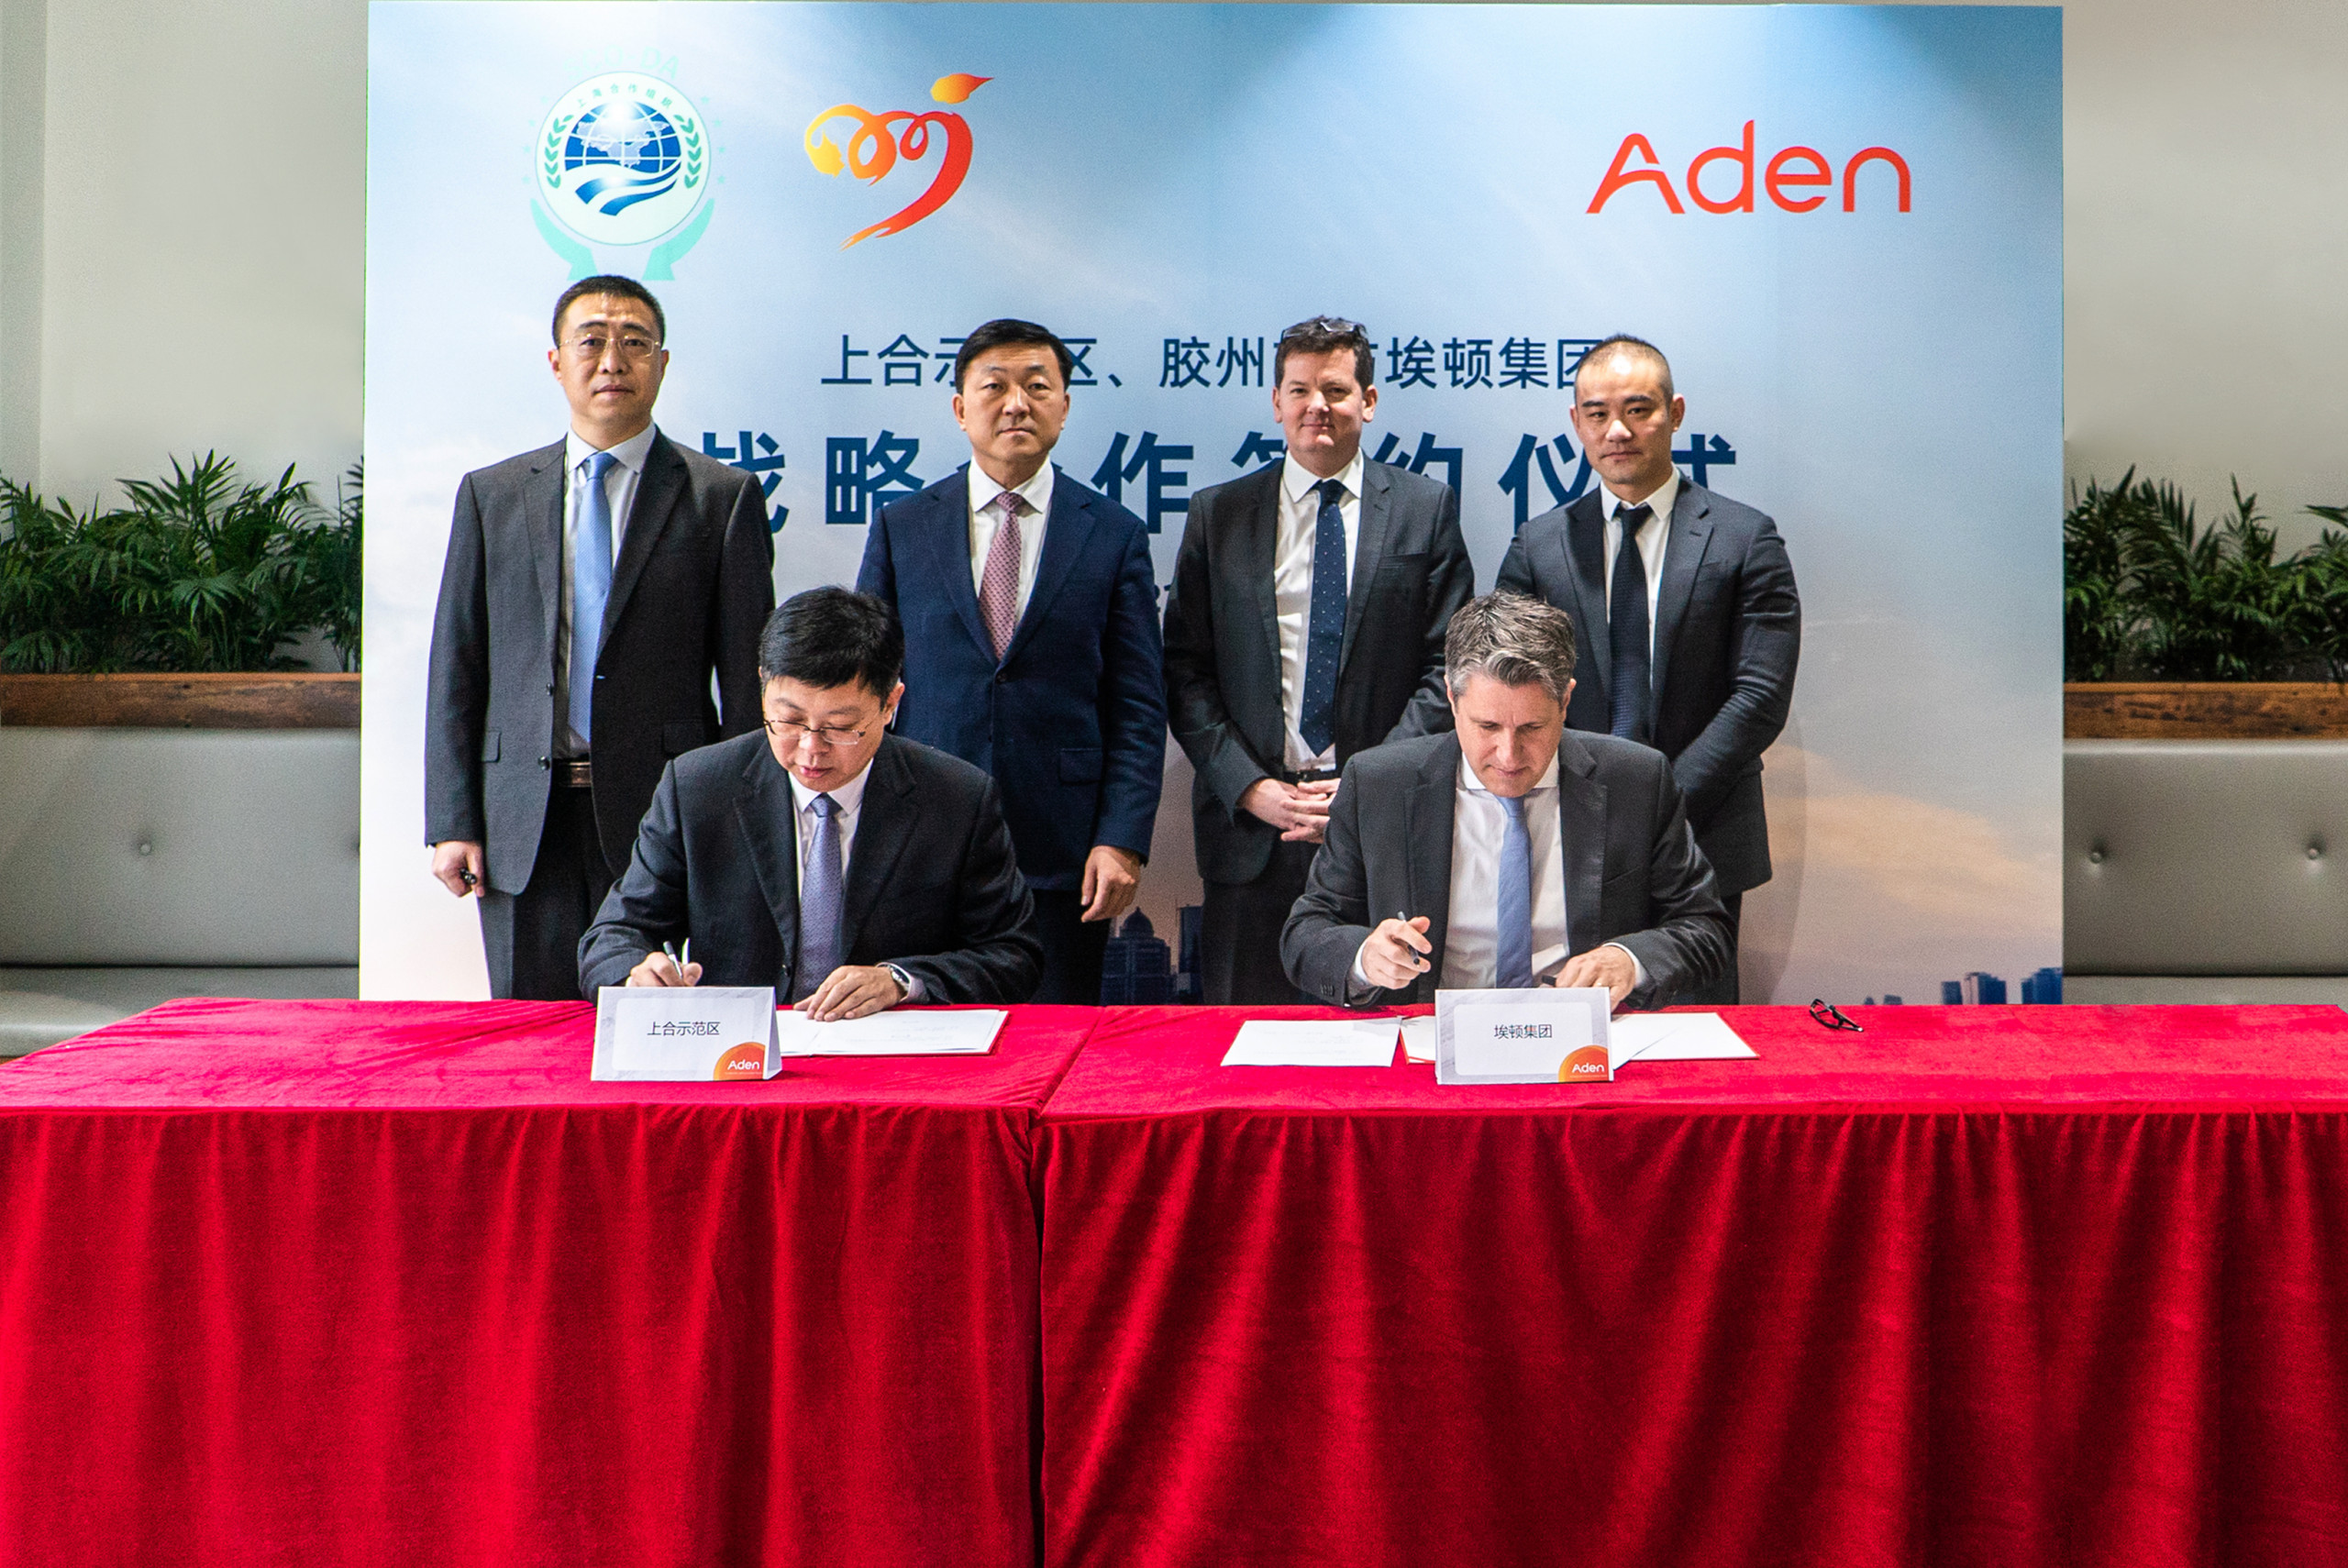 Qingdao signs MOU with Aden